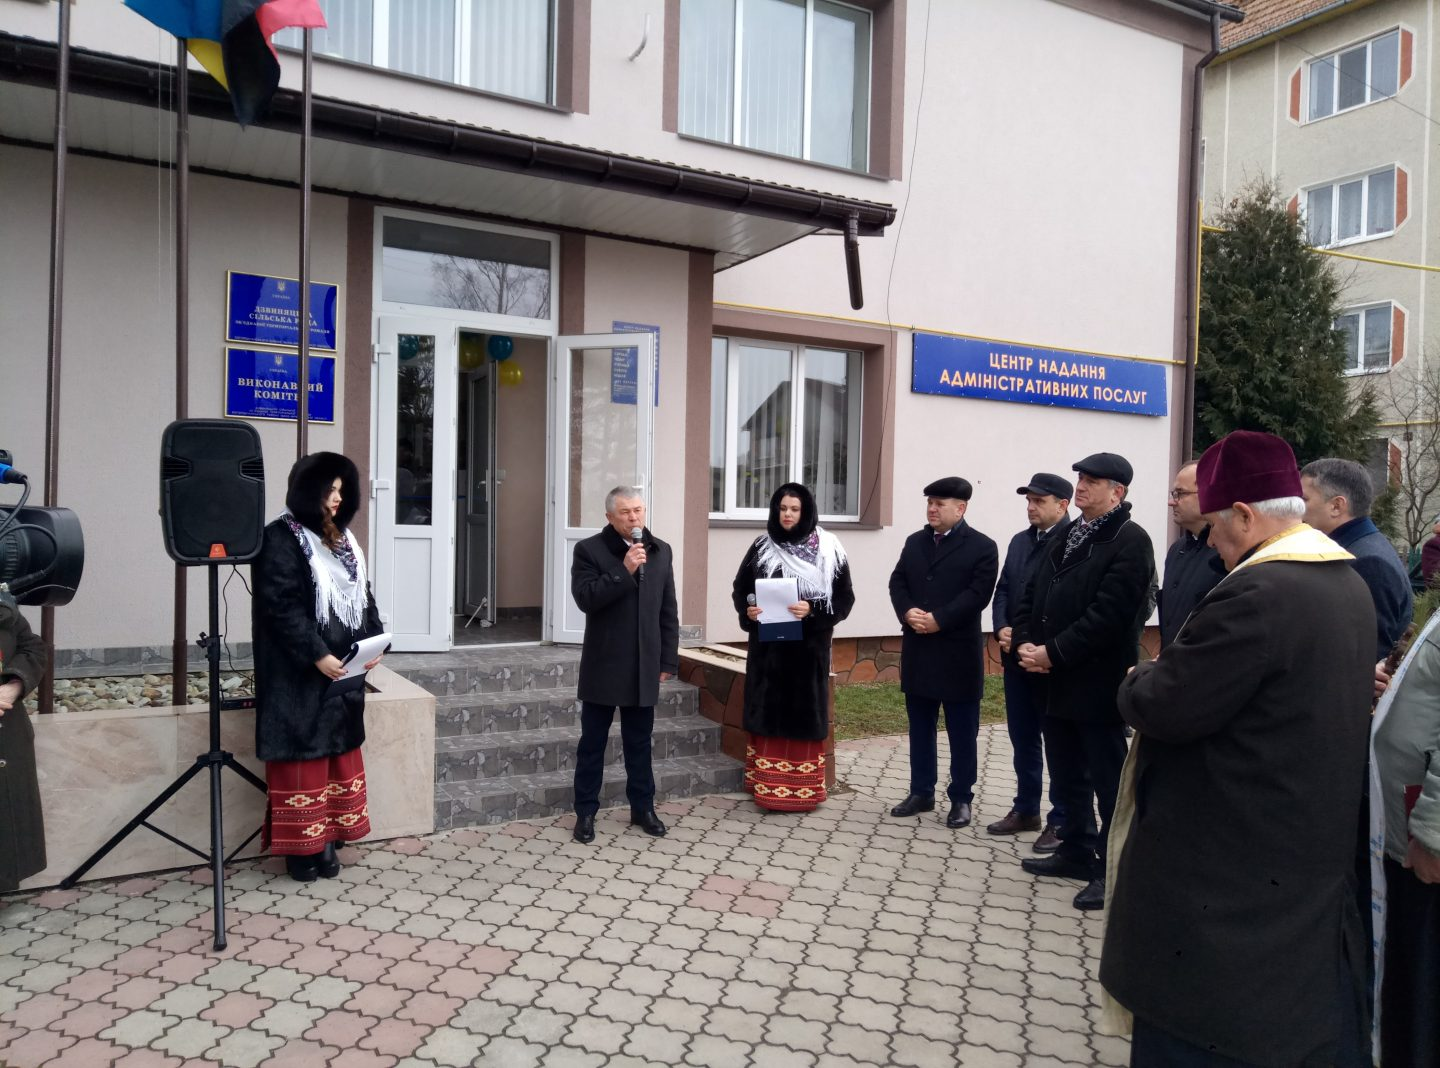 E-Passport service and the Solar Hromada project have been launched at Dzvyniatska AH